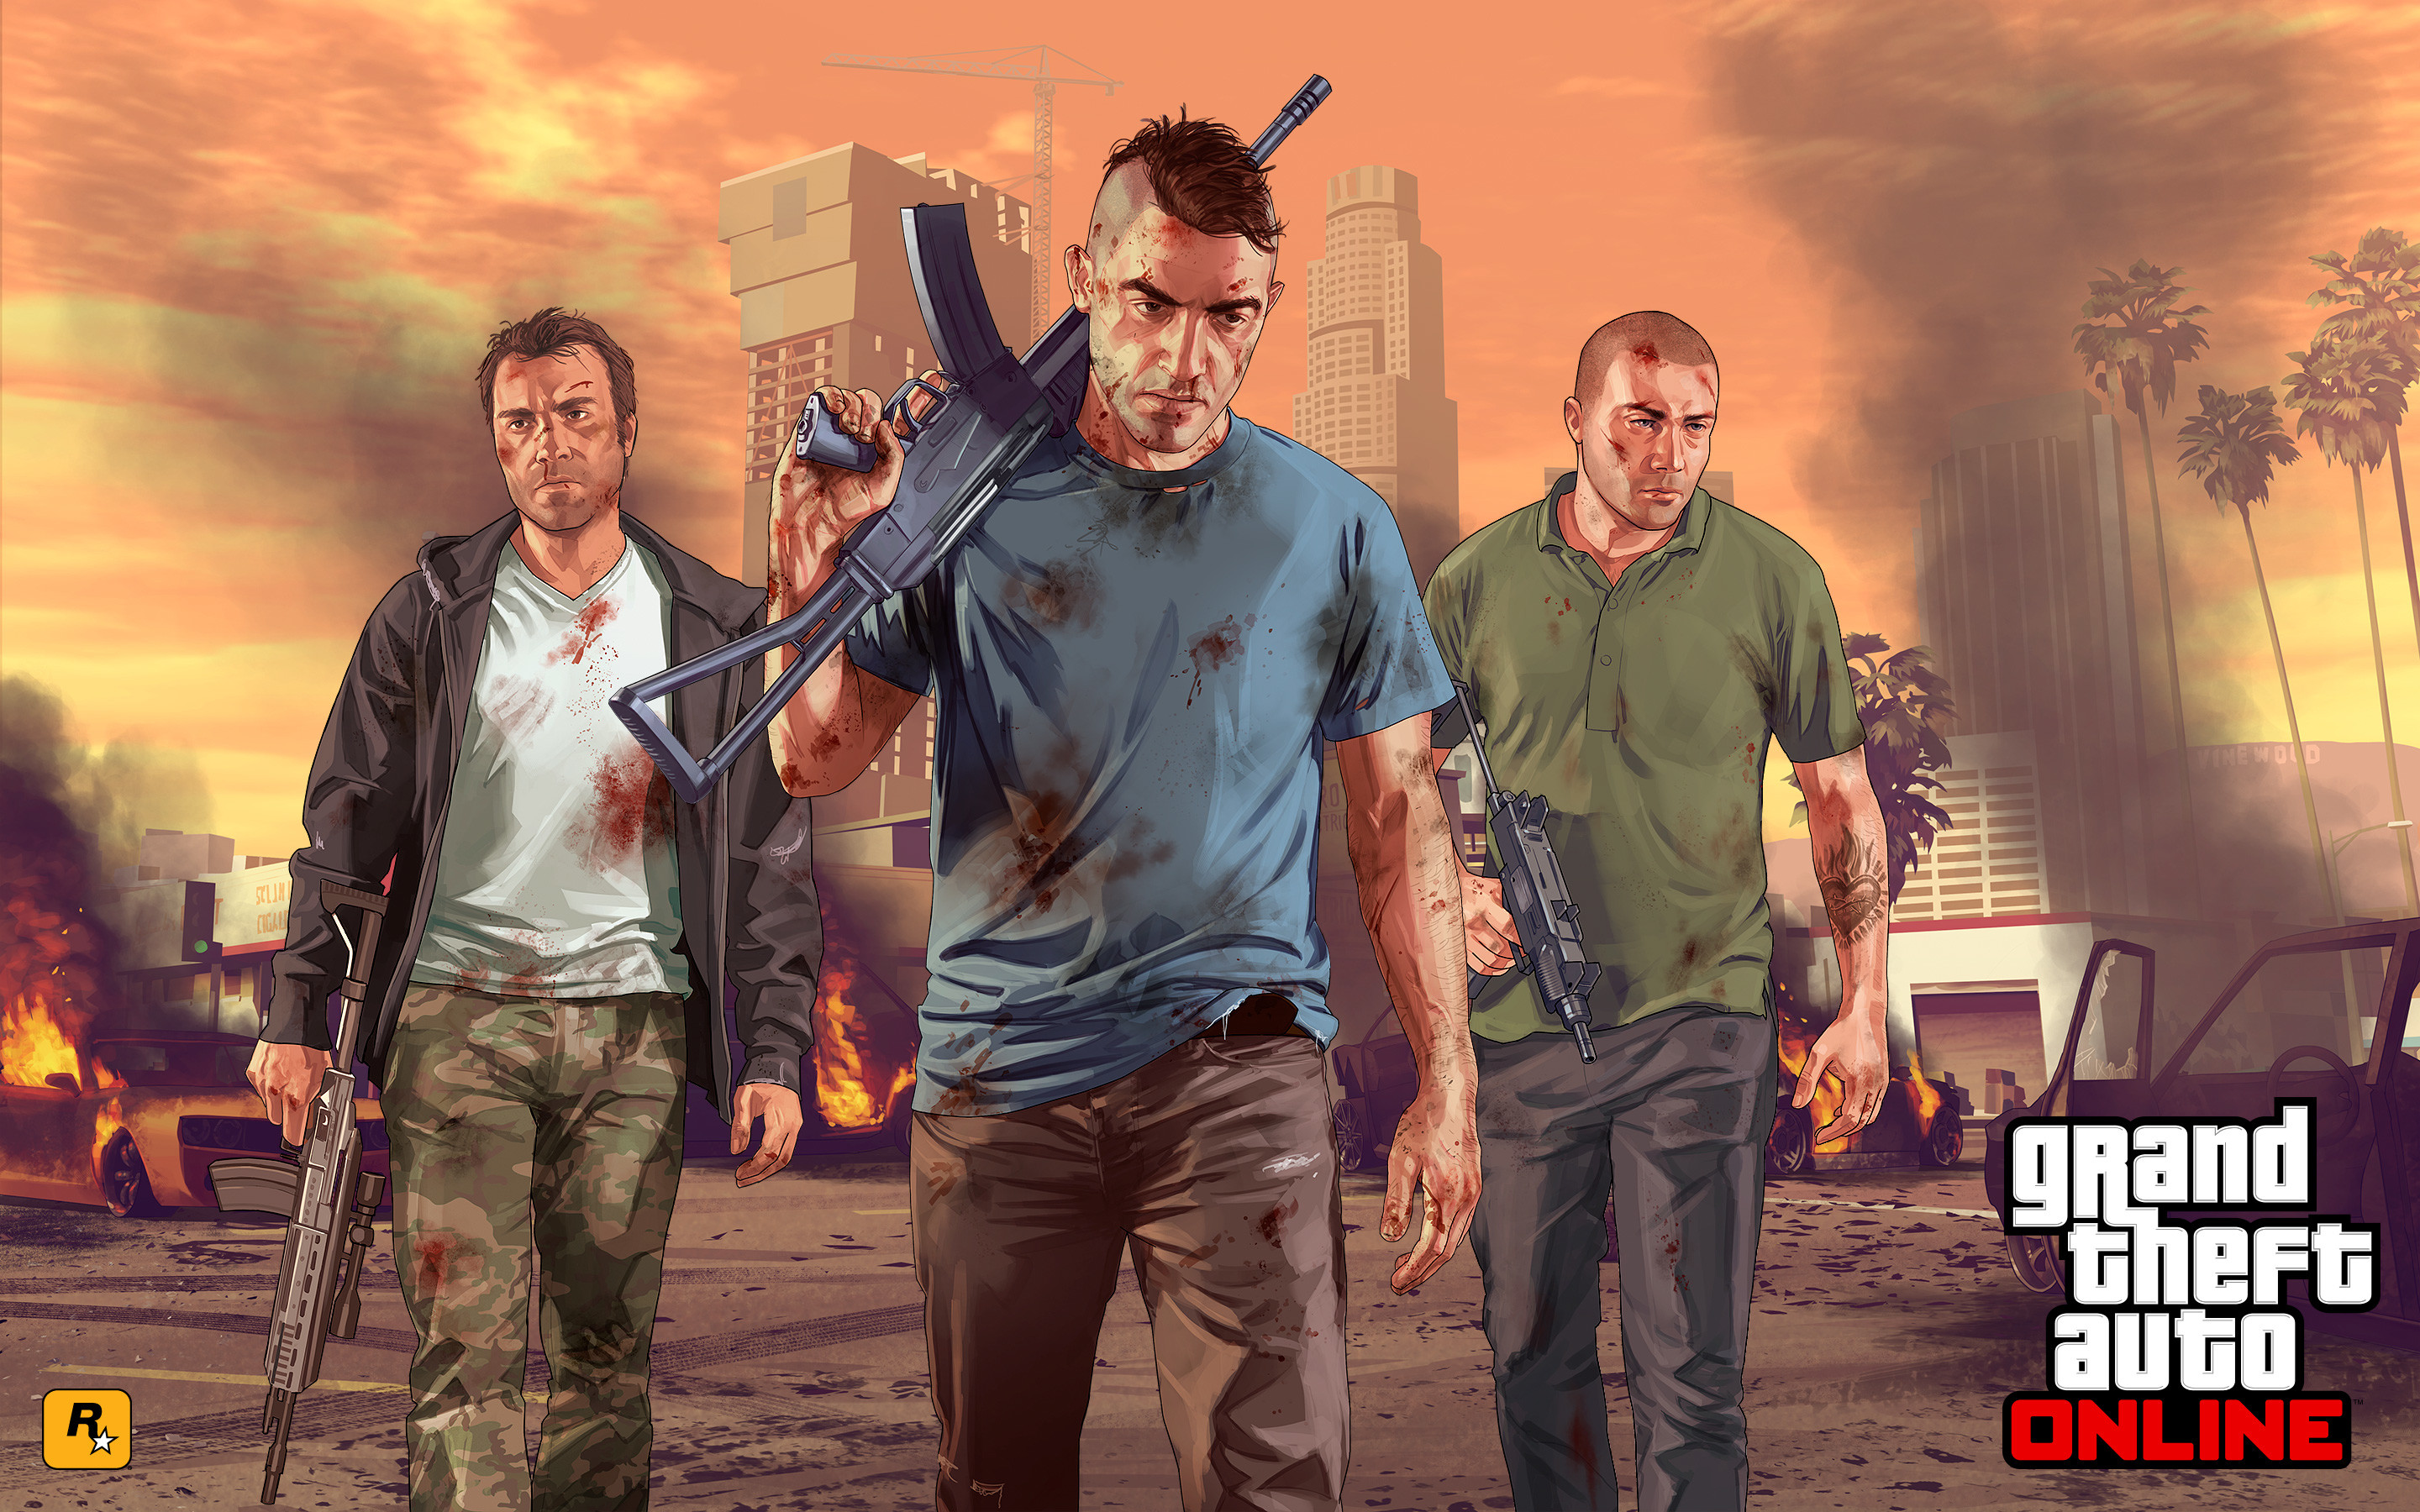 2880x1800 Wallpaper Gta Collection For Free Download